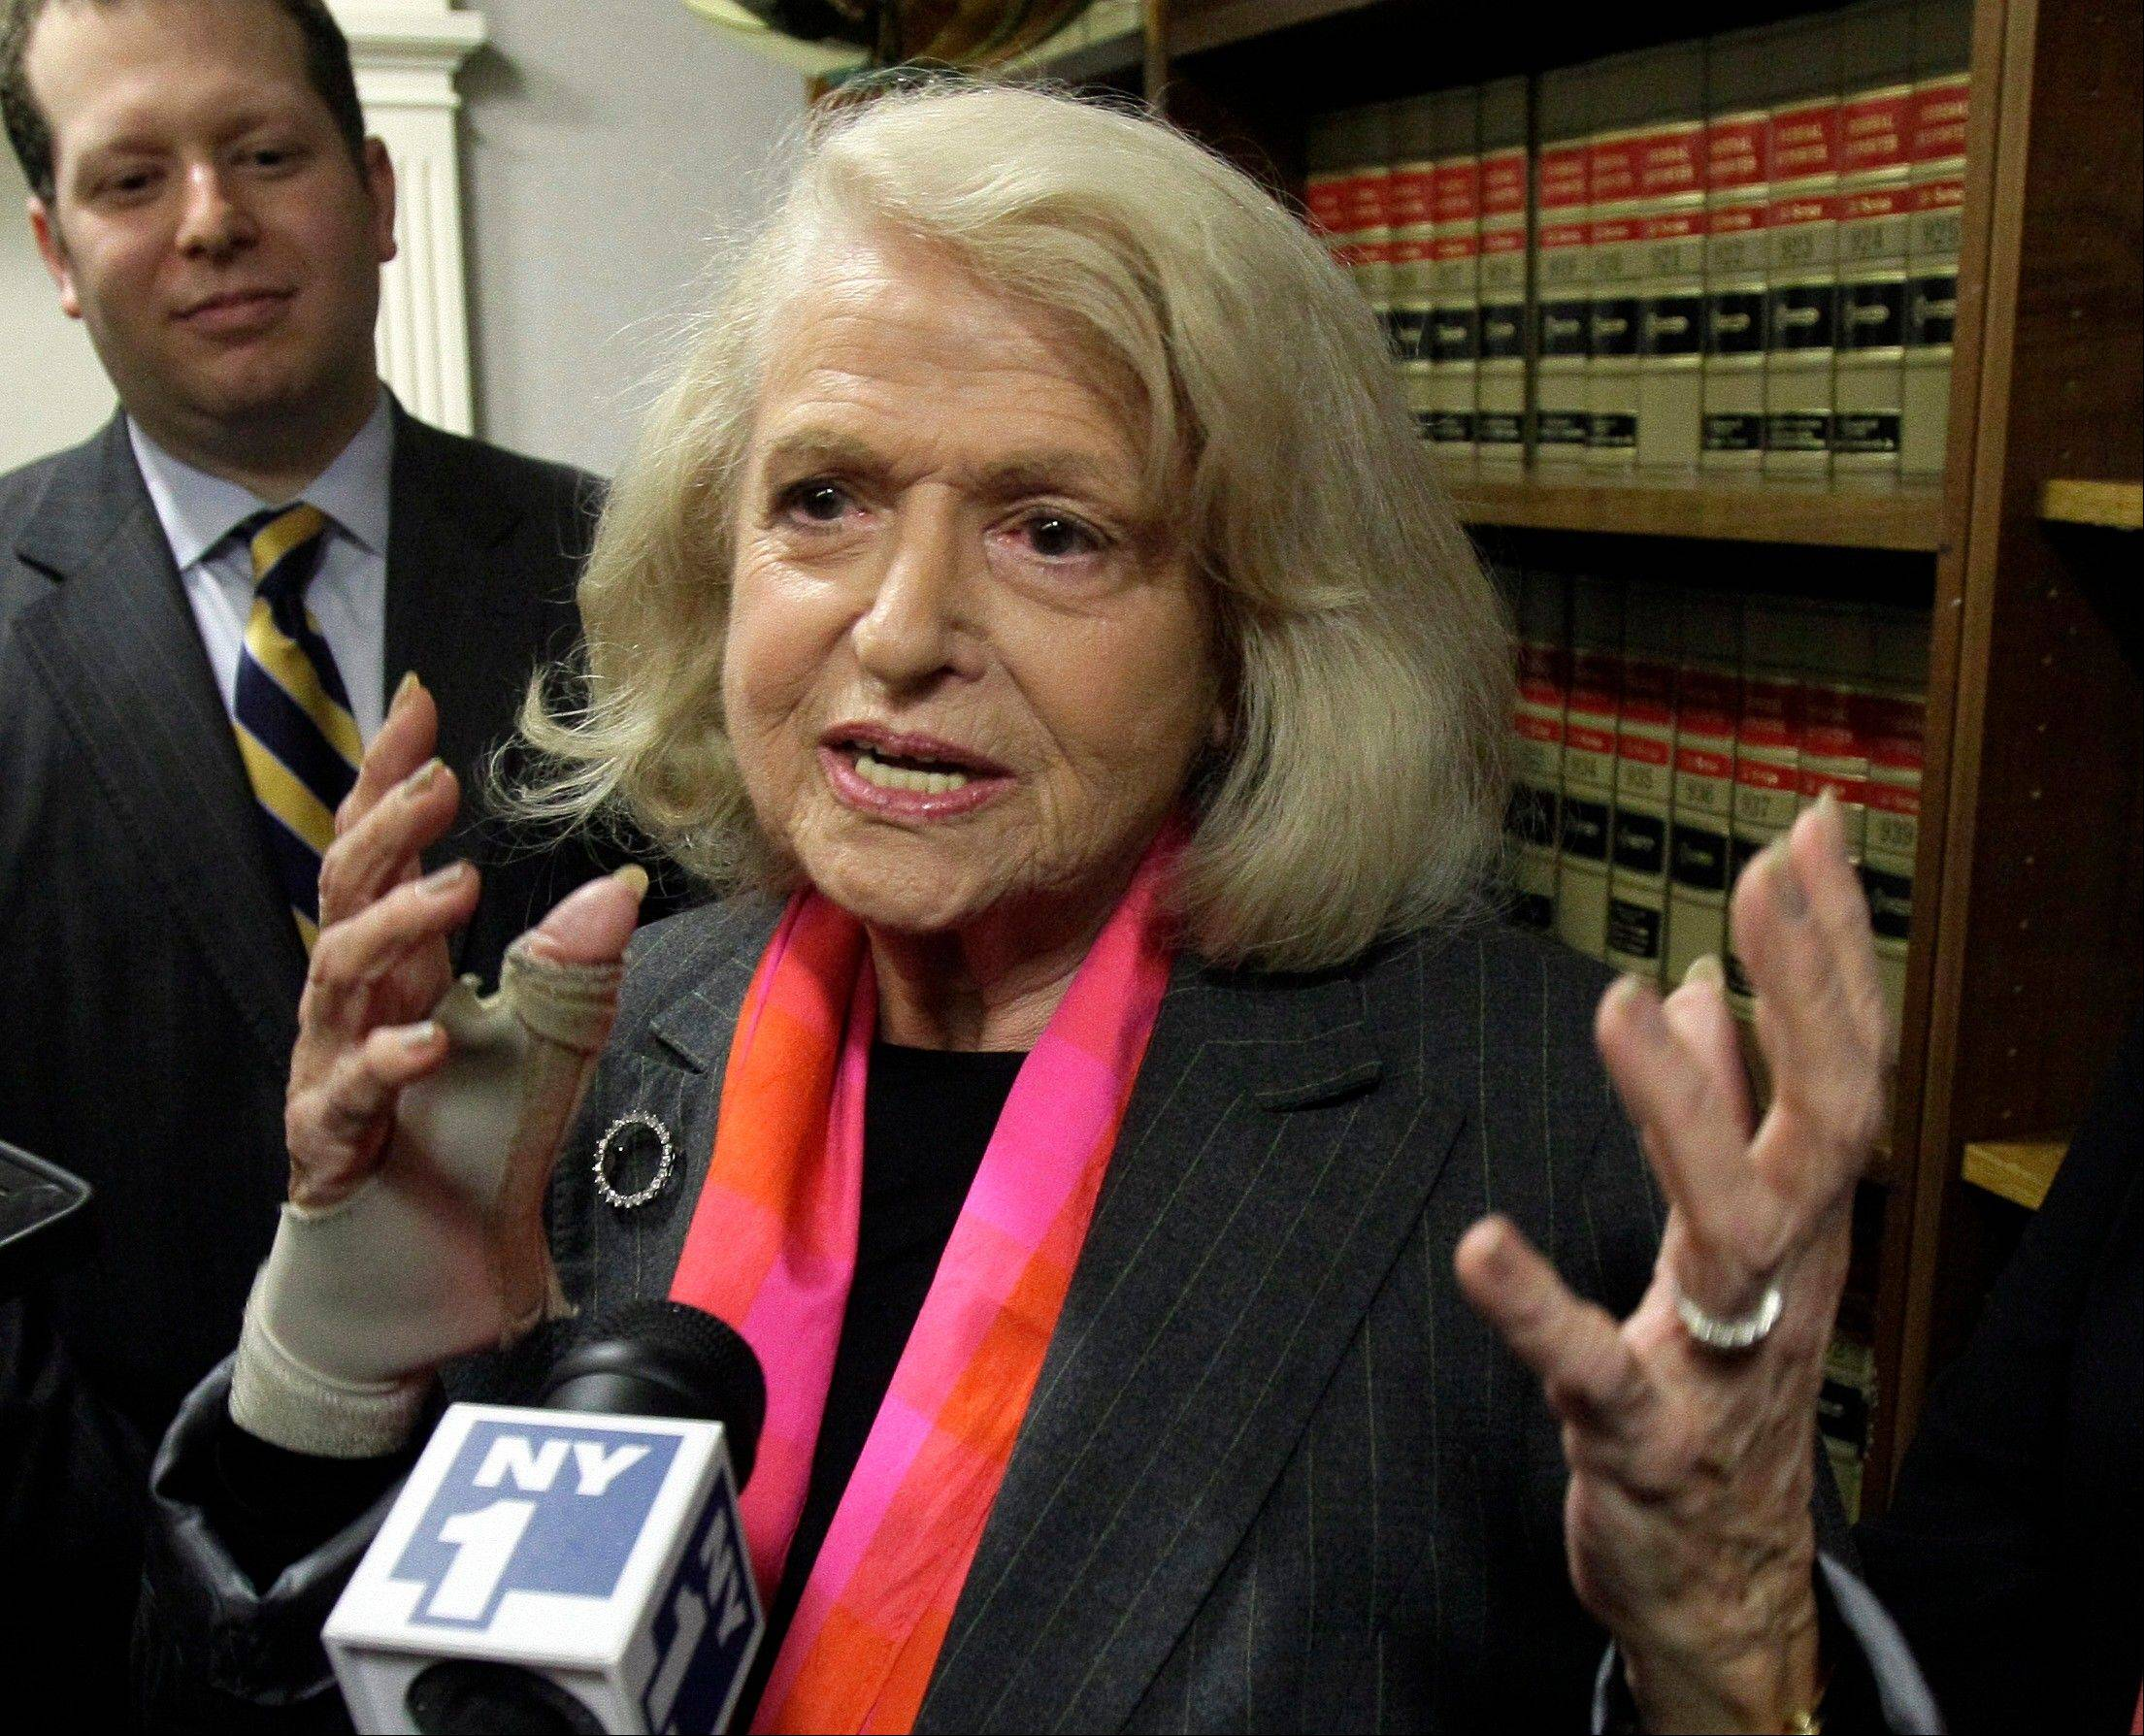 Edith Windsor, seen here in 2012, had to pay estate taxes after her lesbian spouse died. When it comes to things like estate taxes, the federal recognition of same-sex marriage will help legally married gay and lesbian couples.